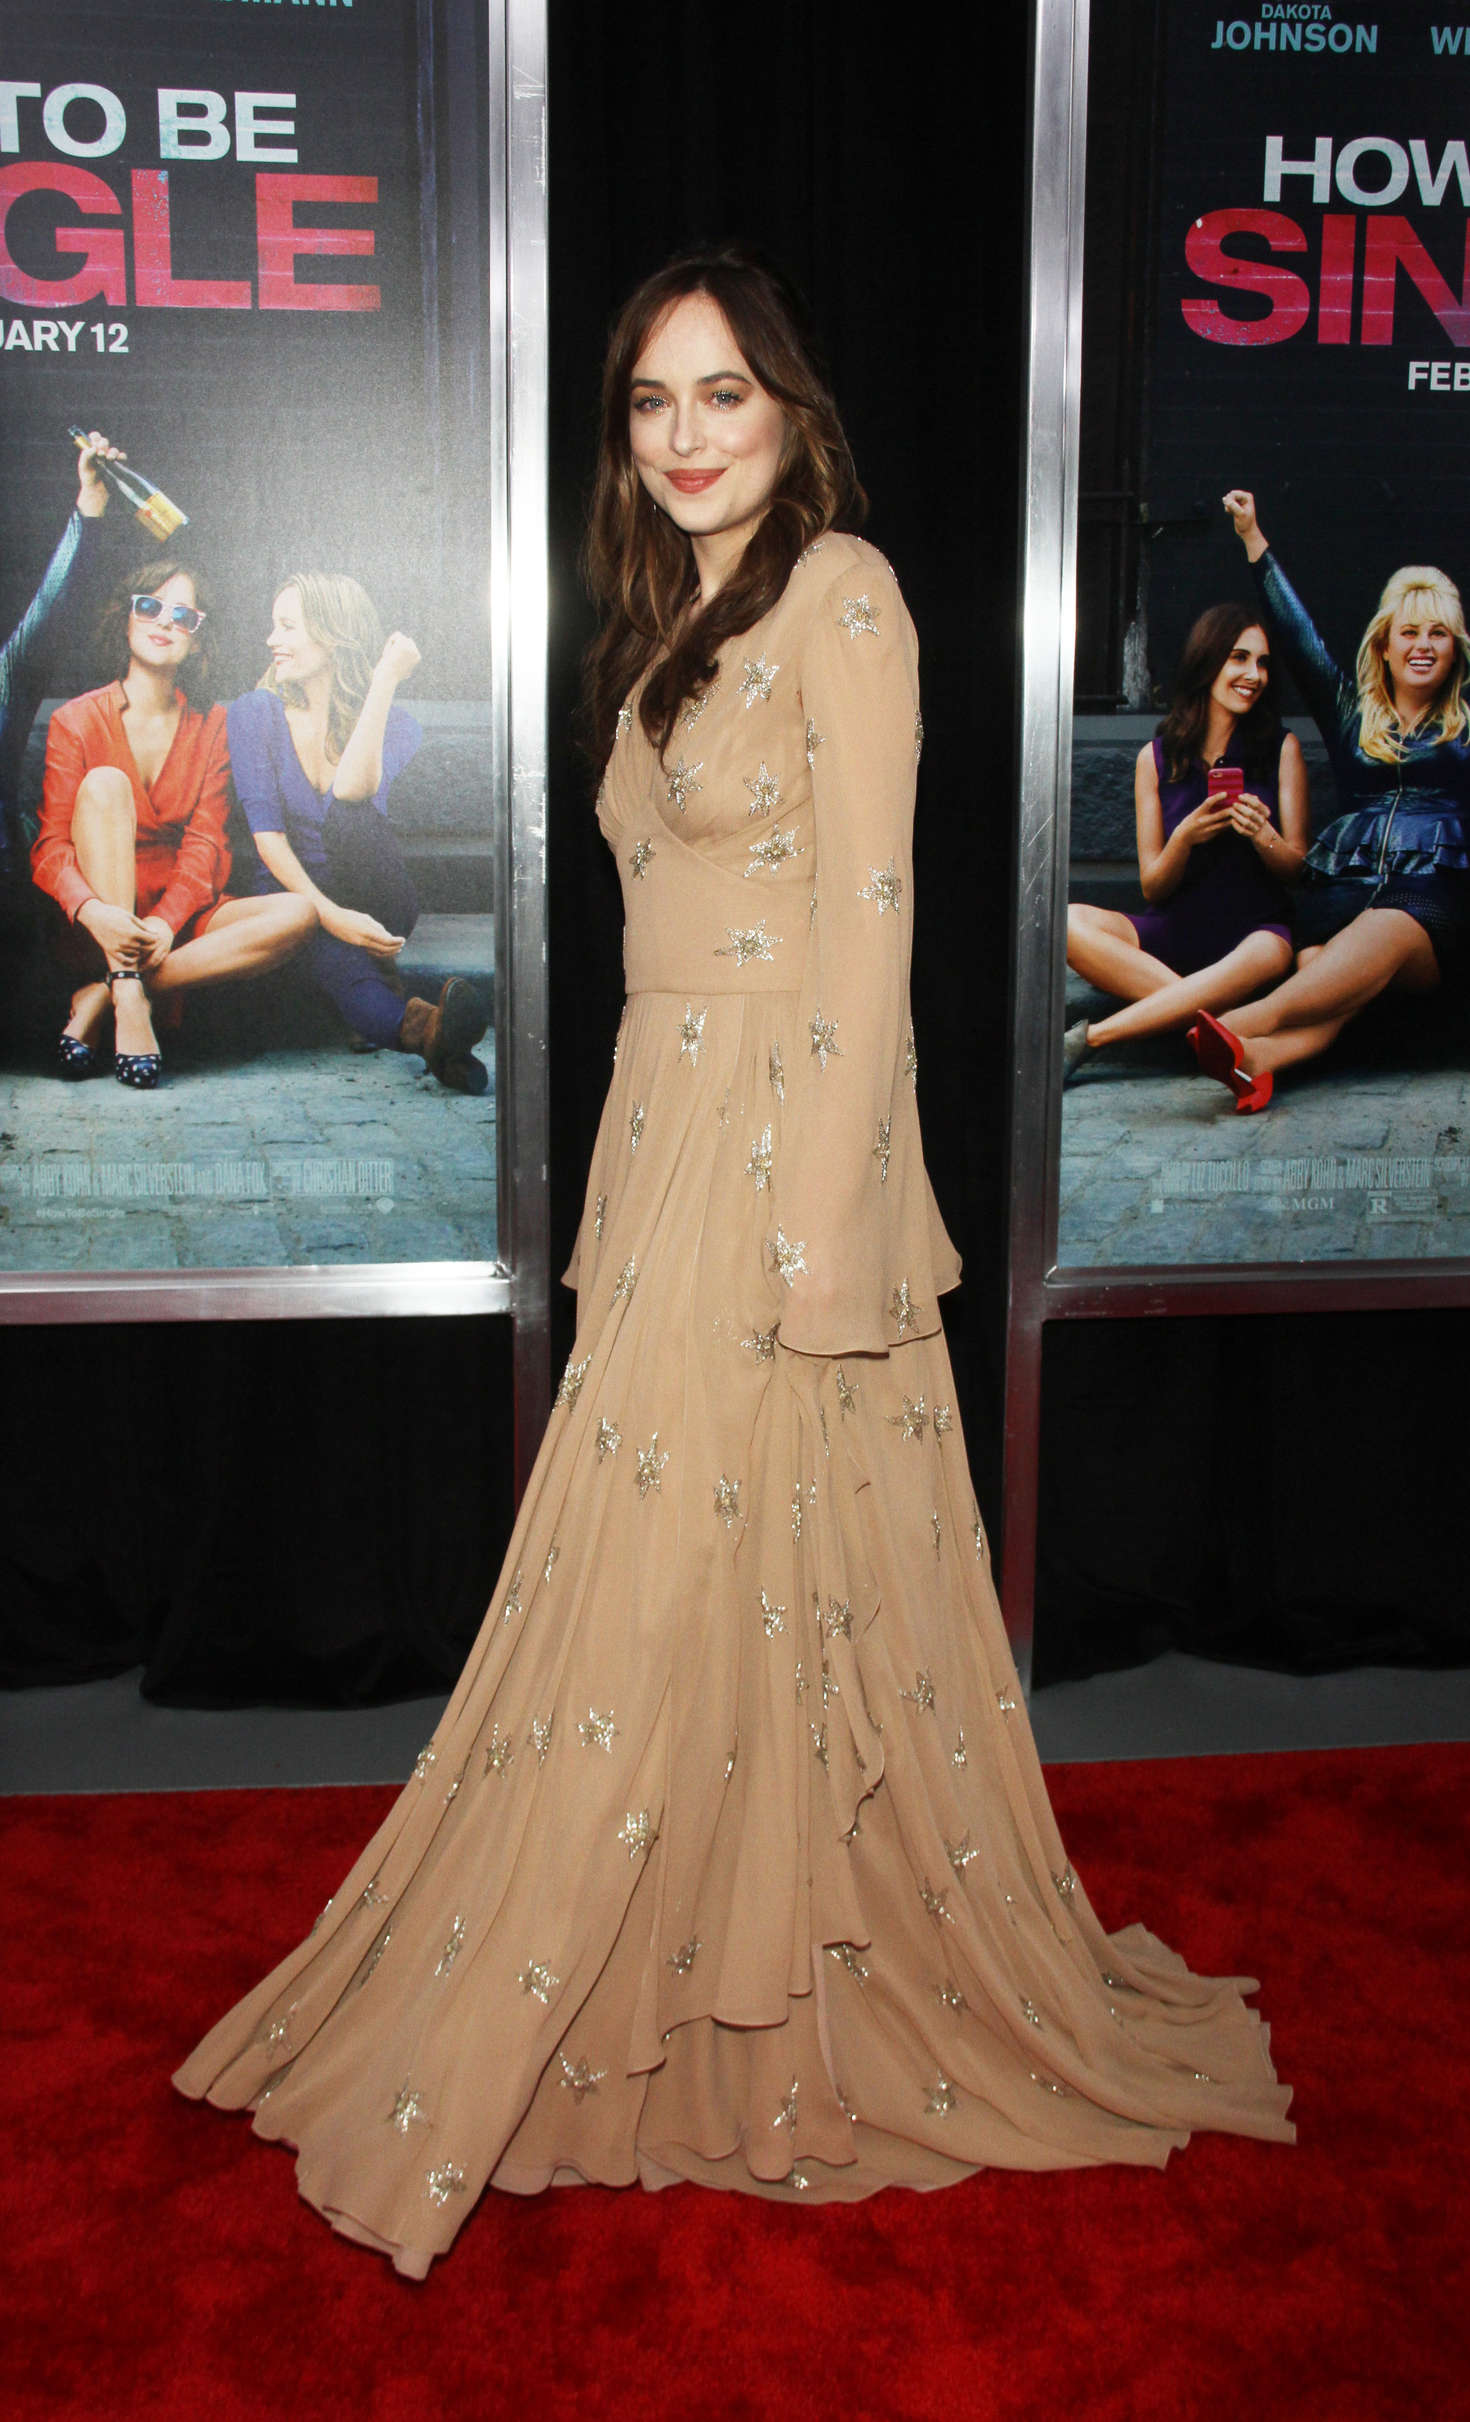 Dakota Johnson: How To Be Single Ny Premiere